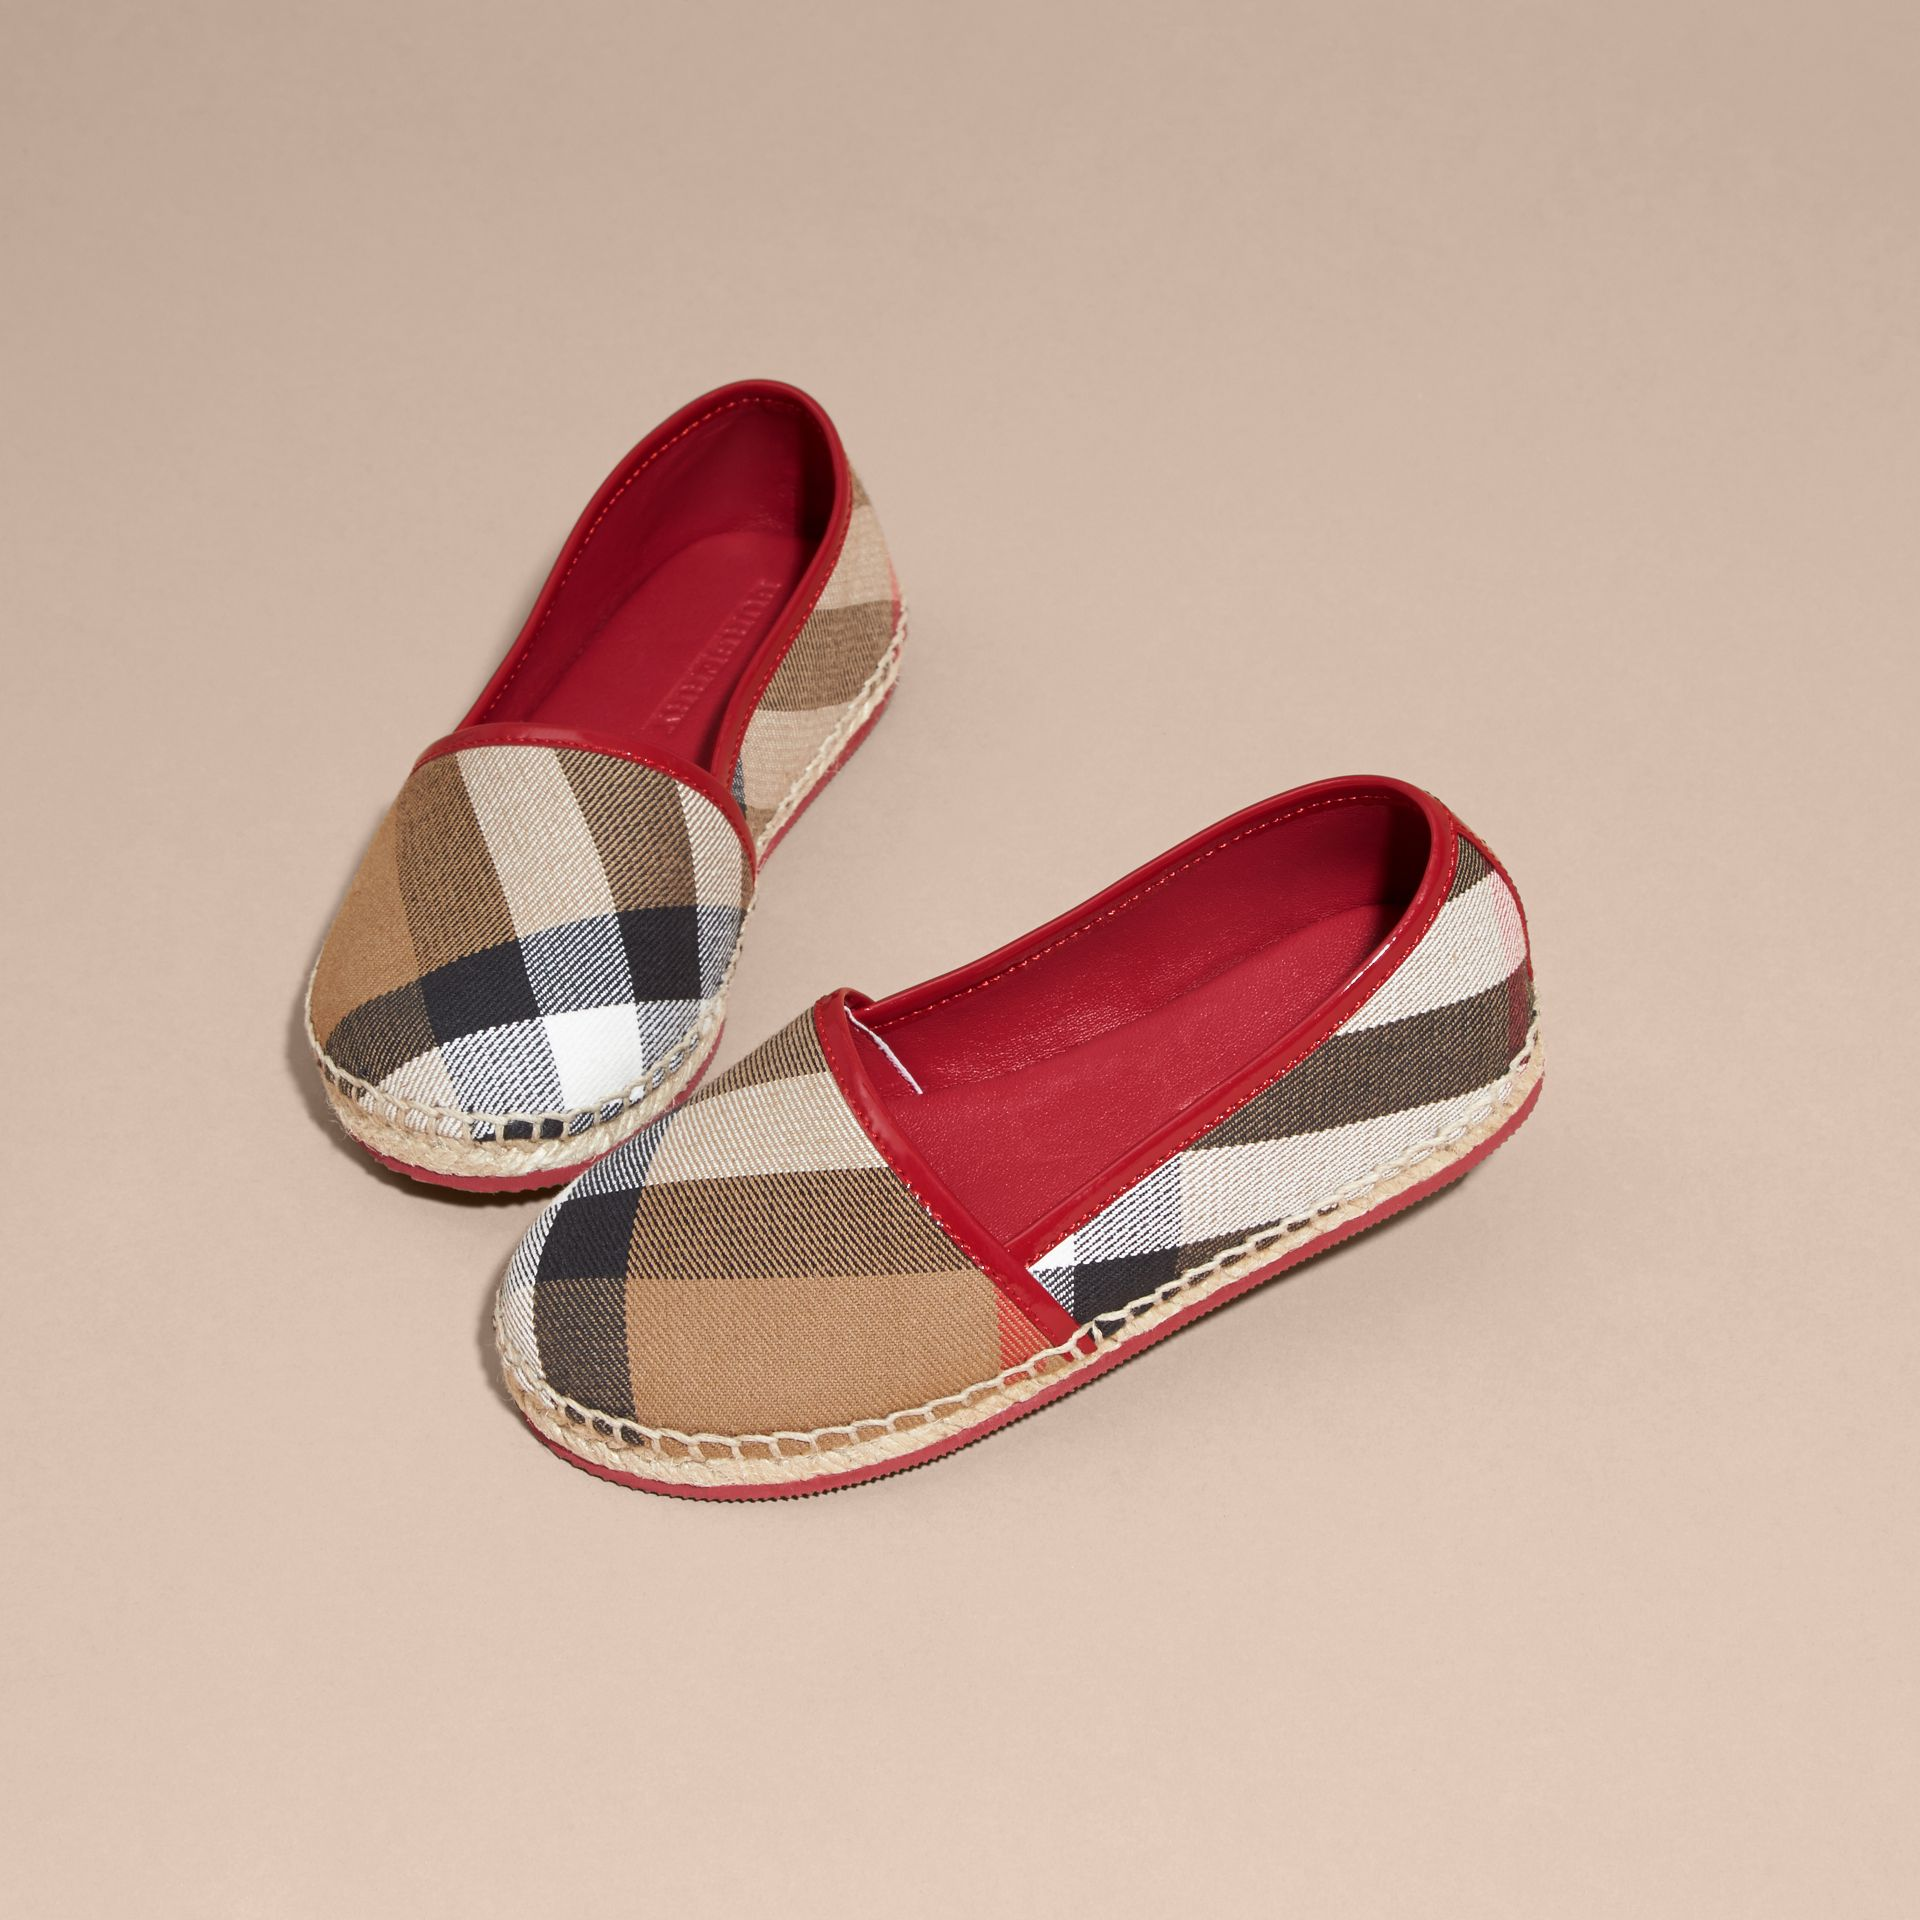 Berry pink House Check Cotton Canvas Espadrilles Berry Pink - gallery image 3